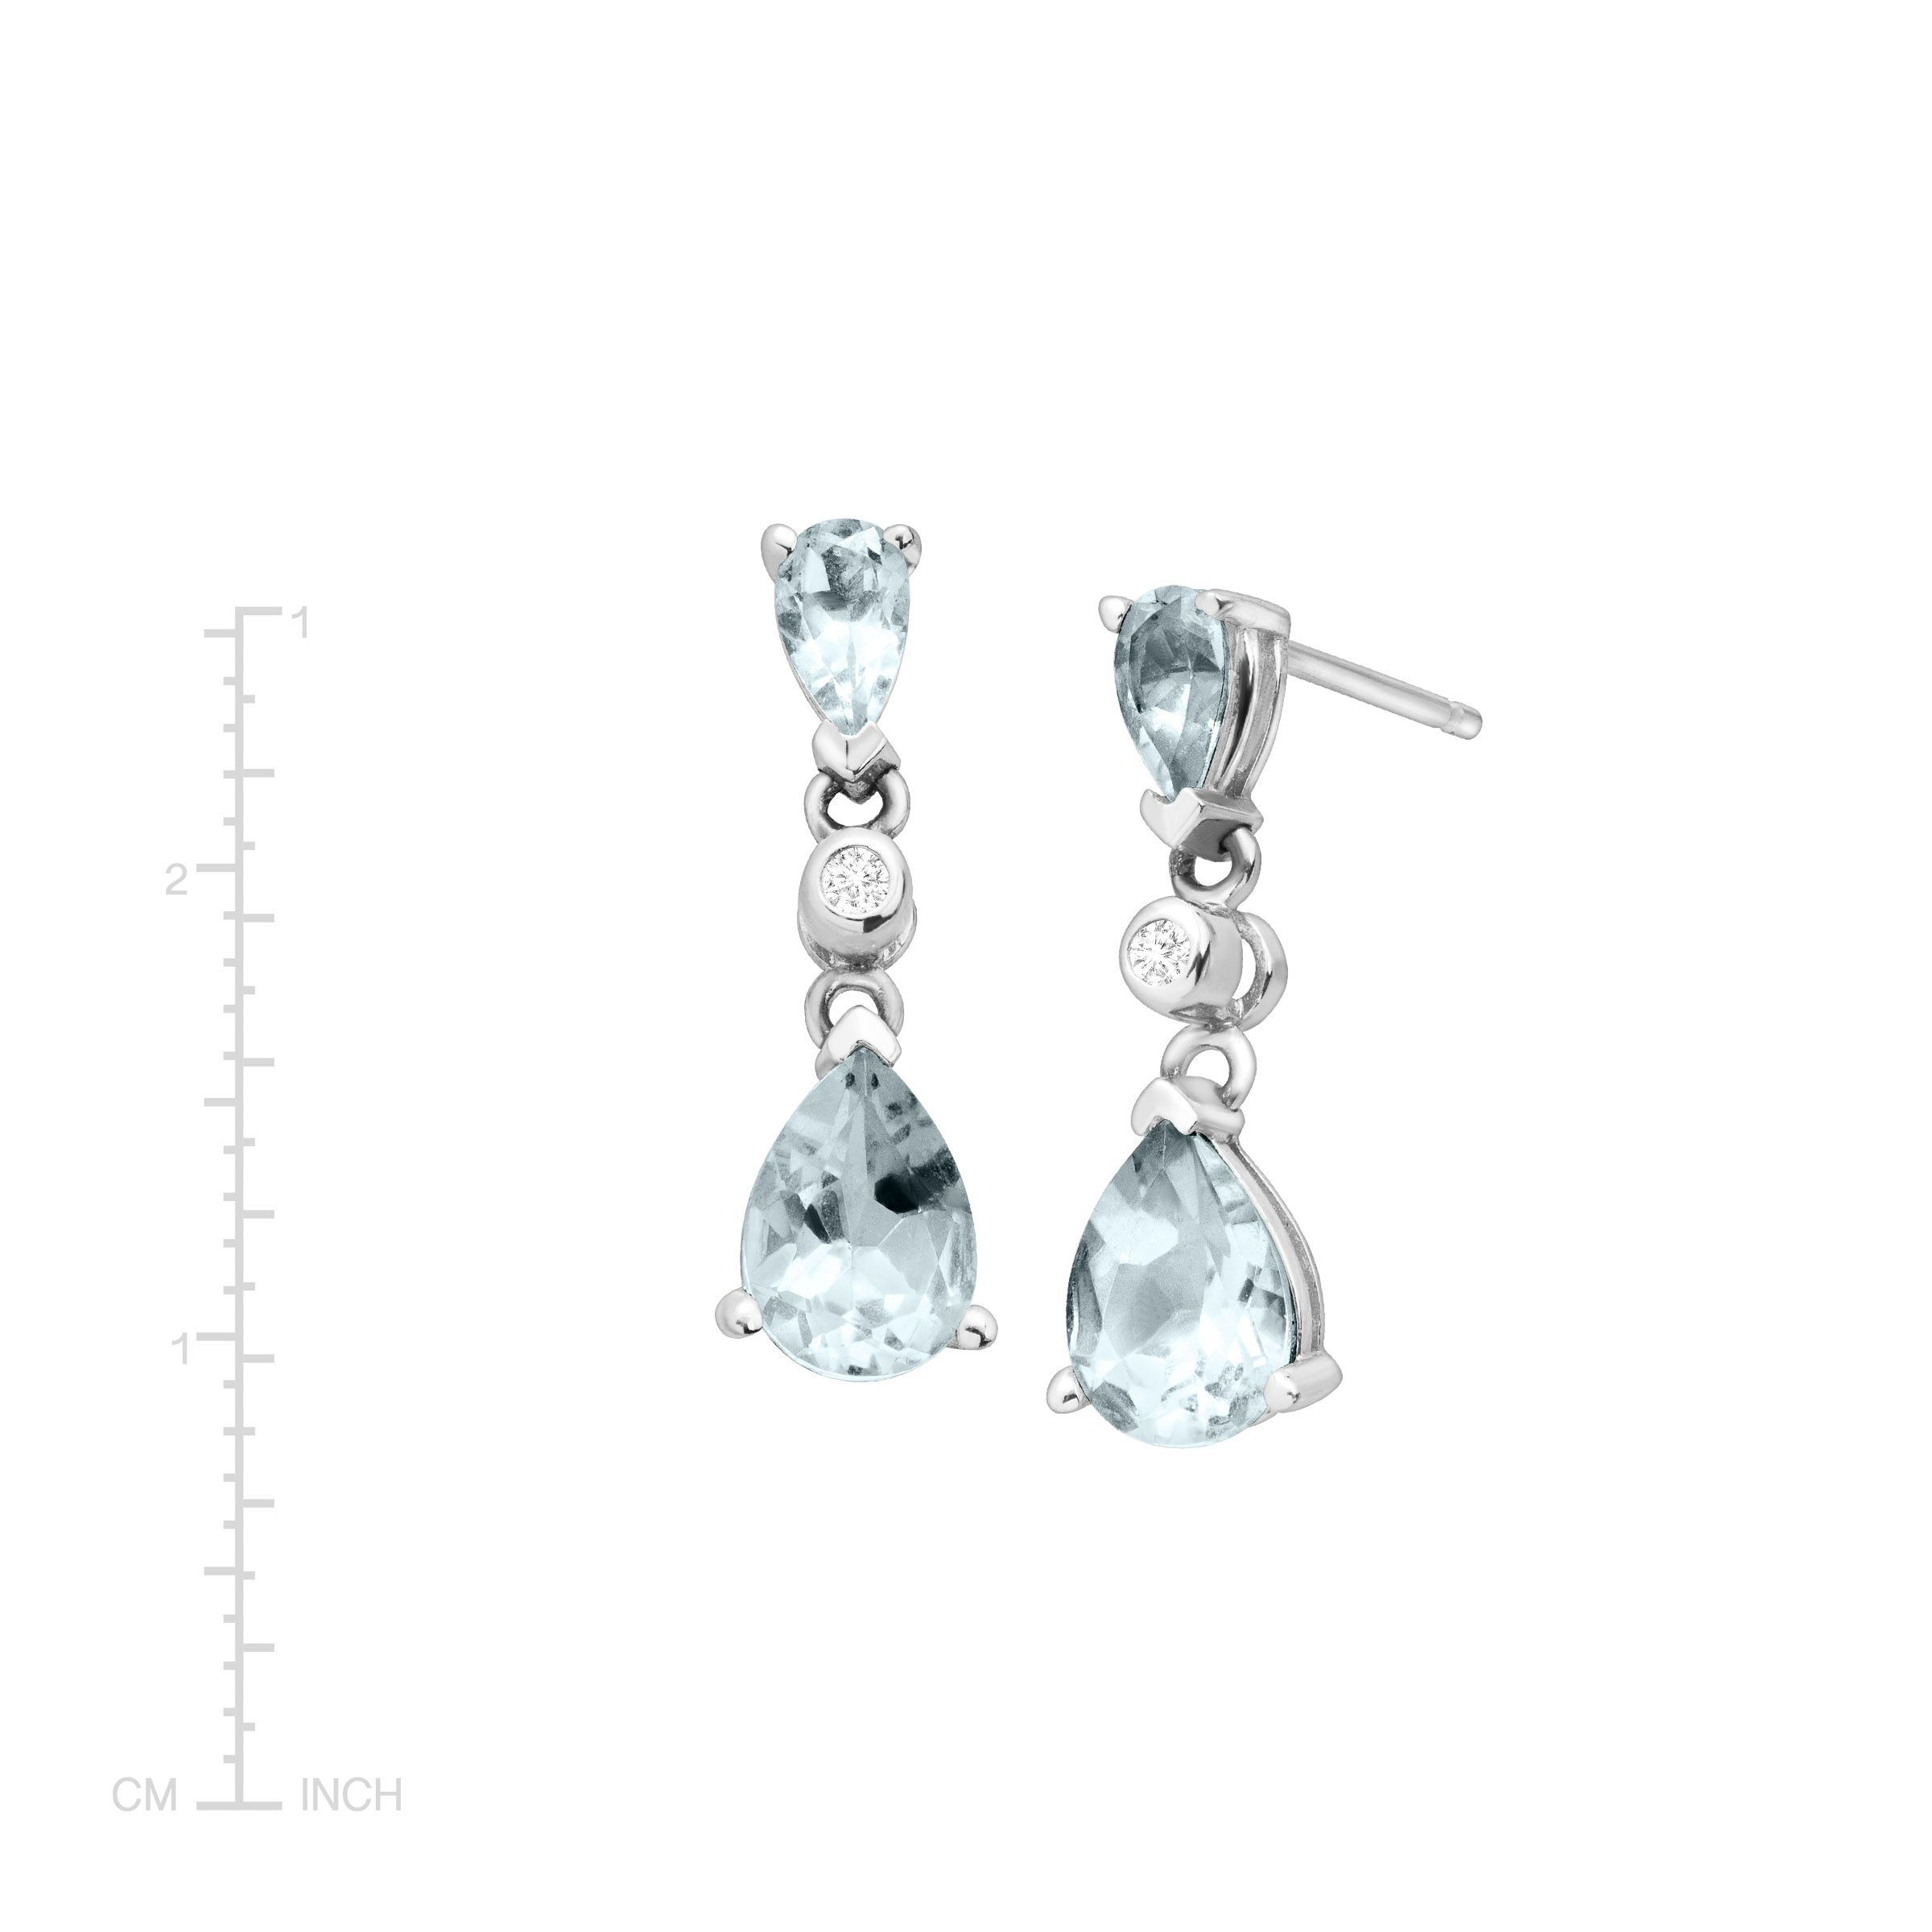 1 2 Ct Natural Aquamarine Drop Earrings With Diamonds In 14k White Gold